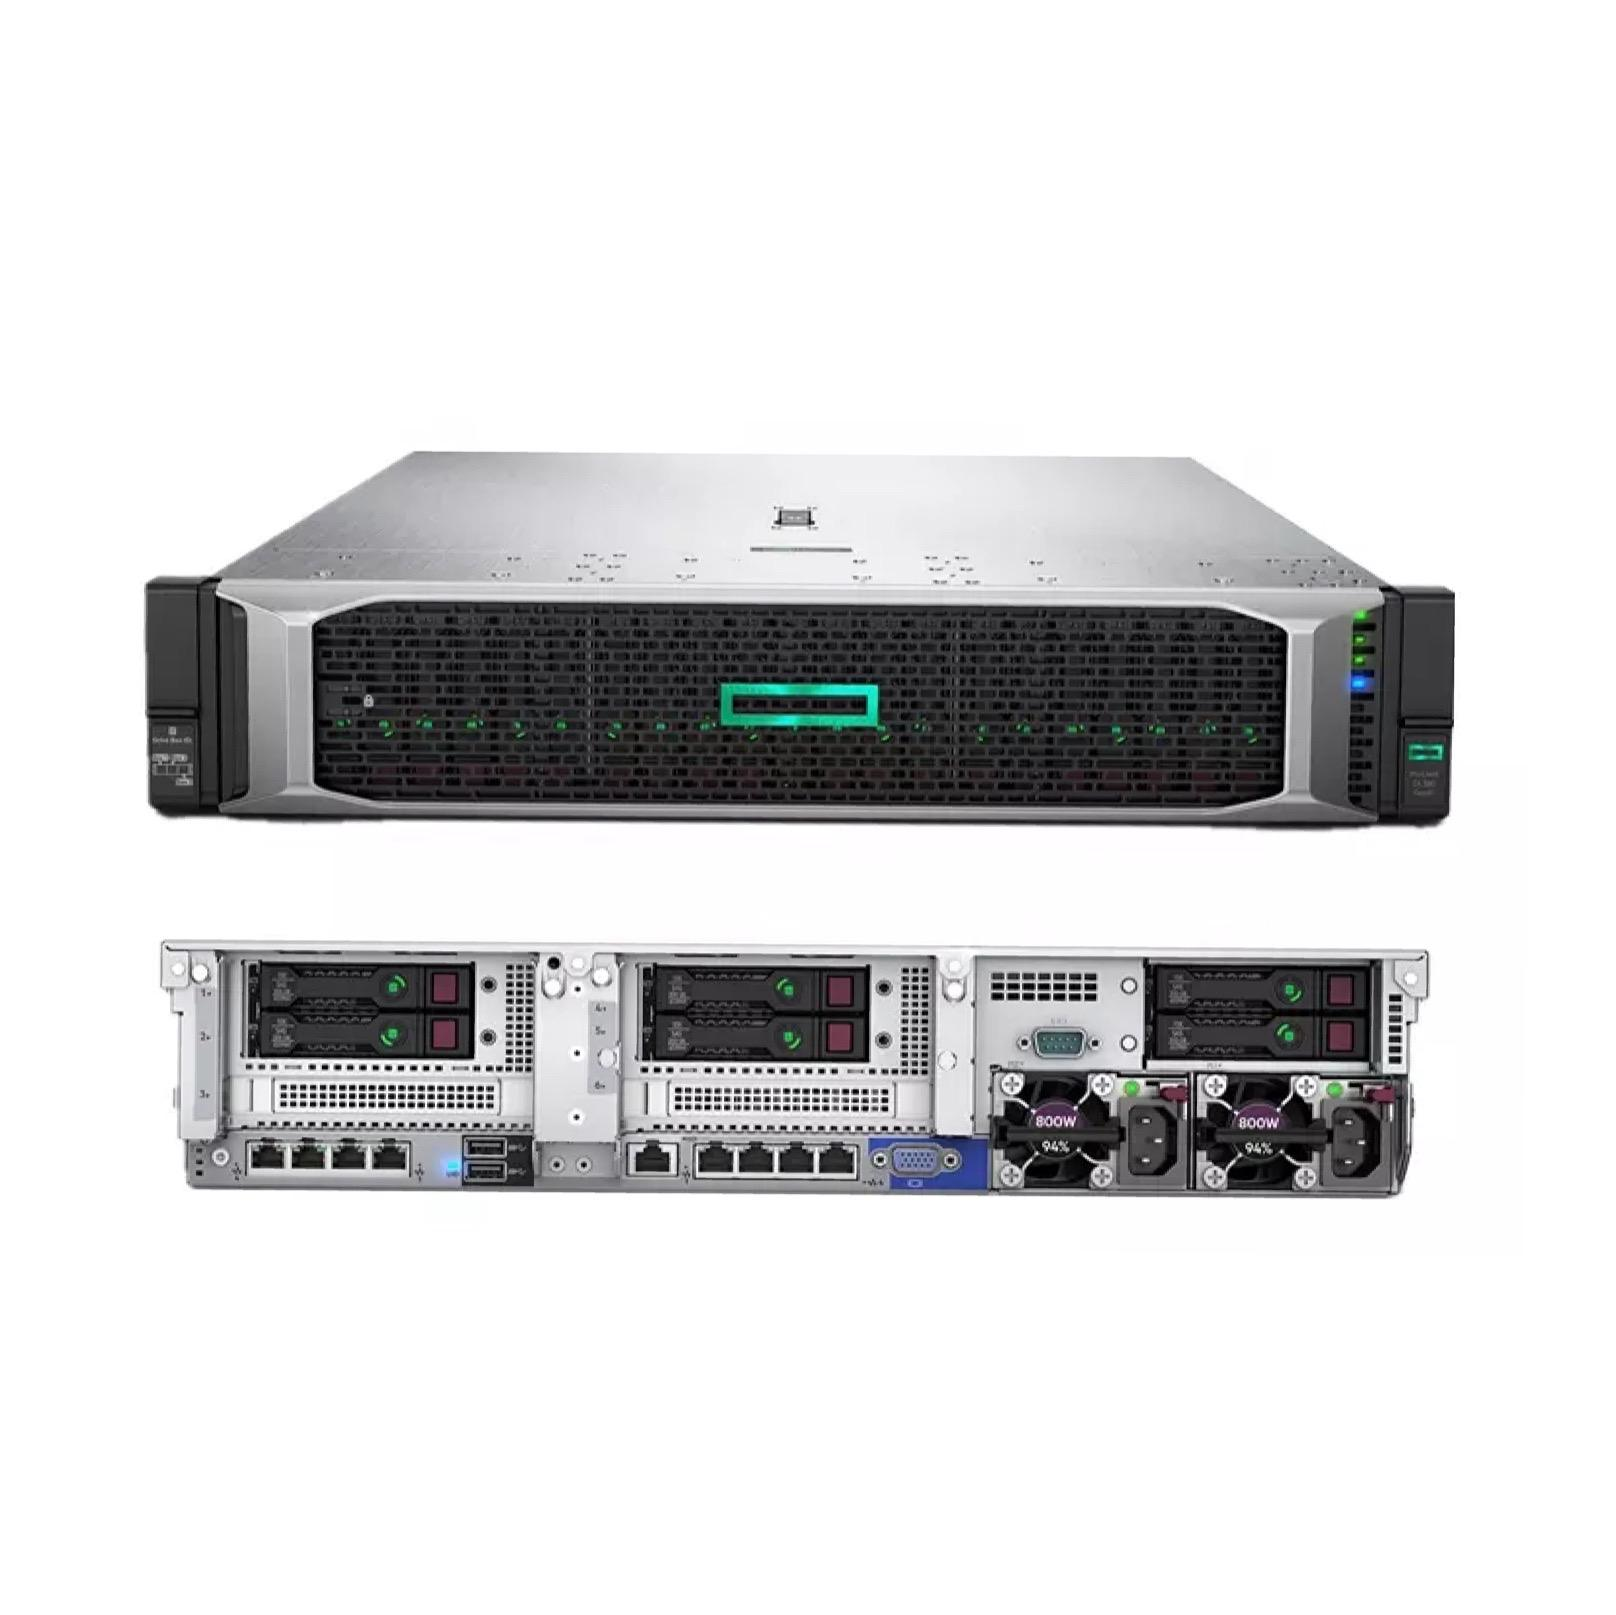 在庫DL380 GEN9 IN-TEL XEON 12-CORE E5-2690V3/ 2.6GHZ、64GB DDR4 3*600G 800W PS 2Uラックサーバー